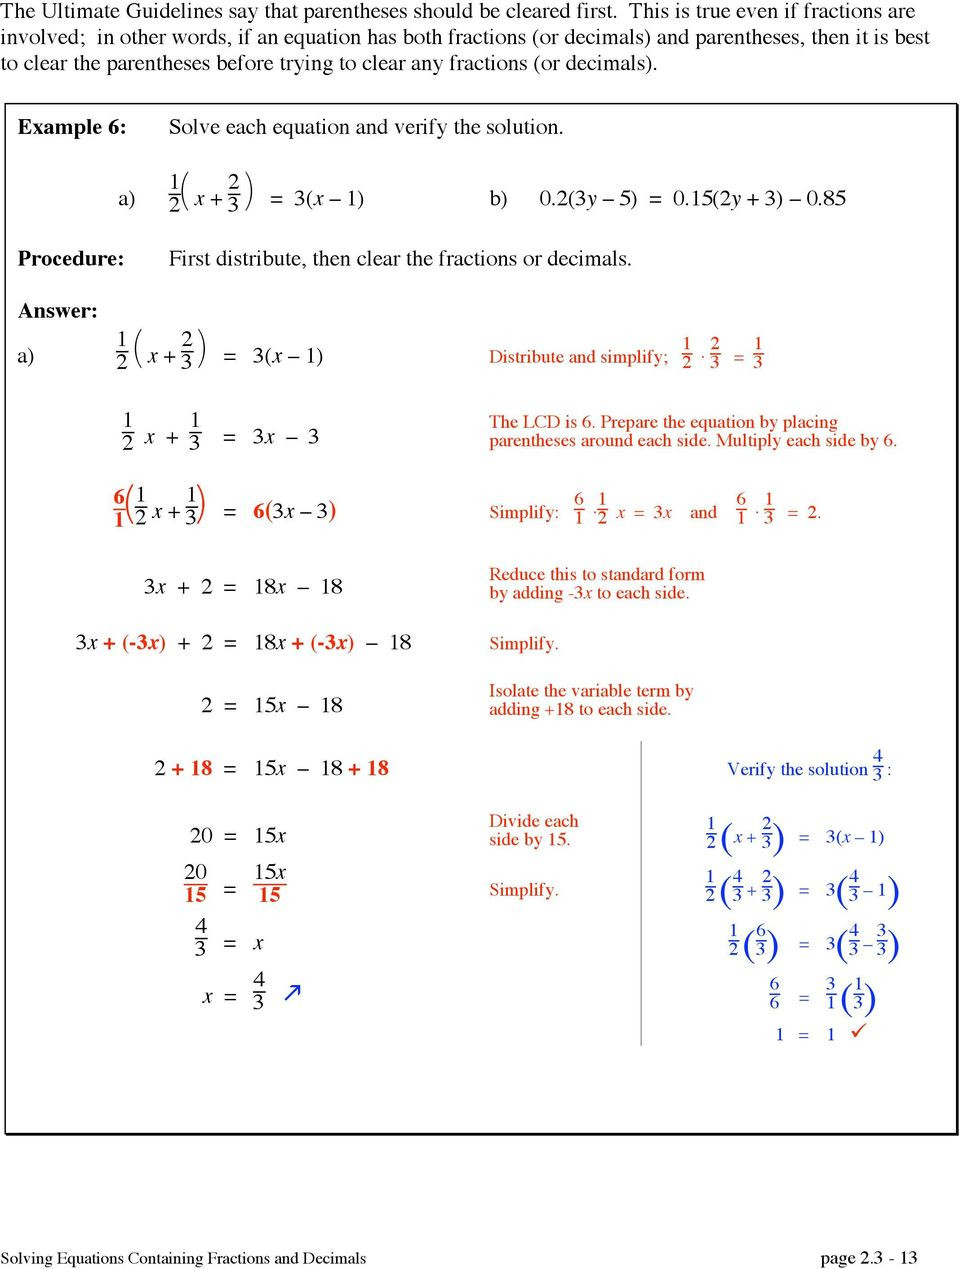 Equations with Fractions Worksheet solving Equations by Clearing Fractions and Decimals